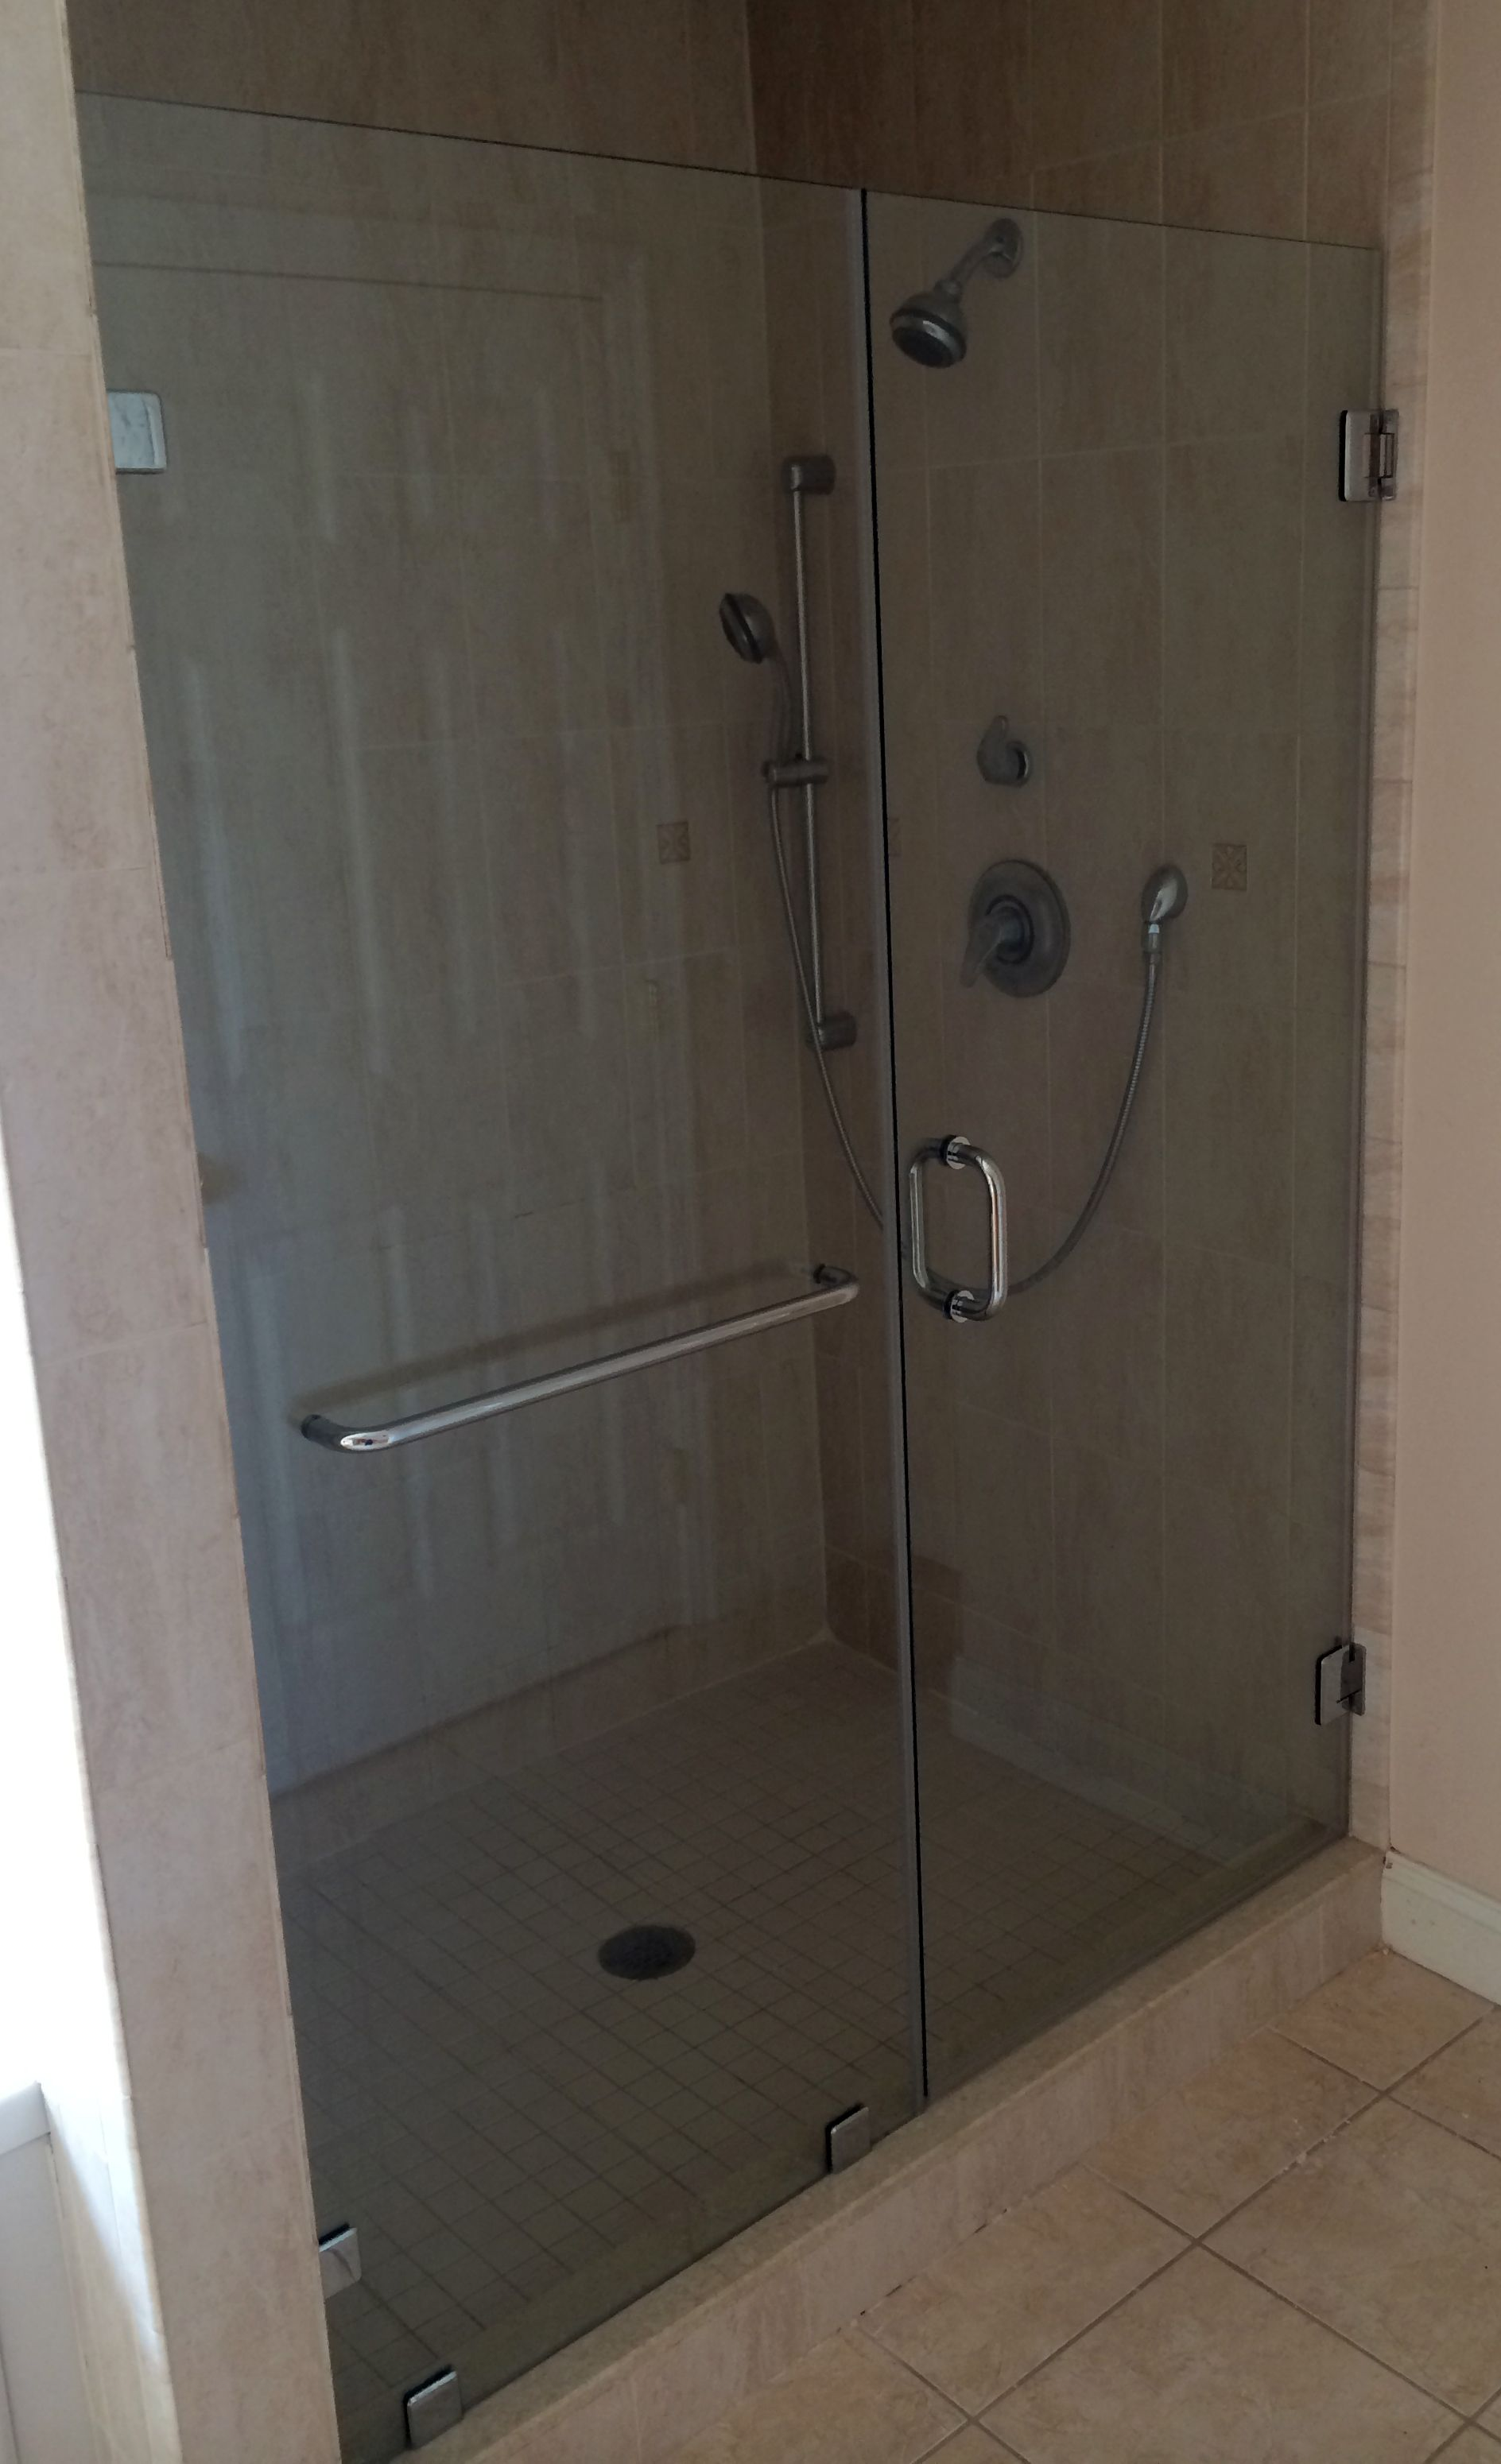 Frameless Shower Door And Panel Installed With Clips And A 20